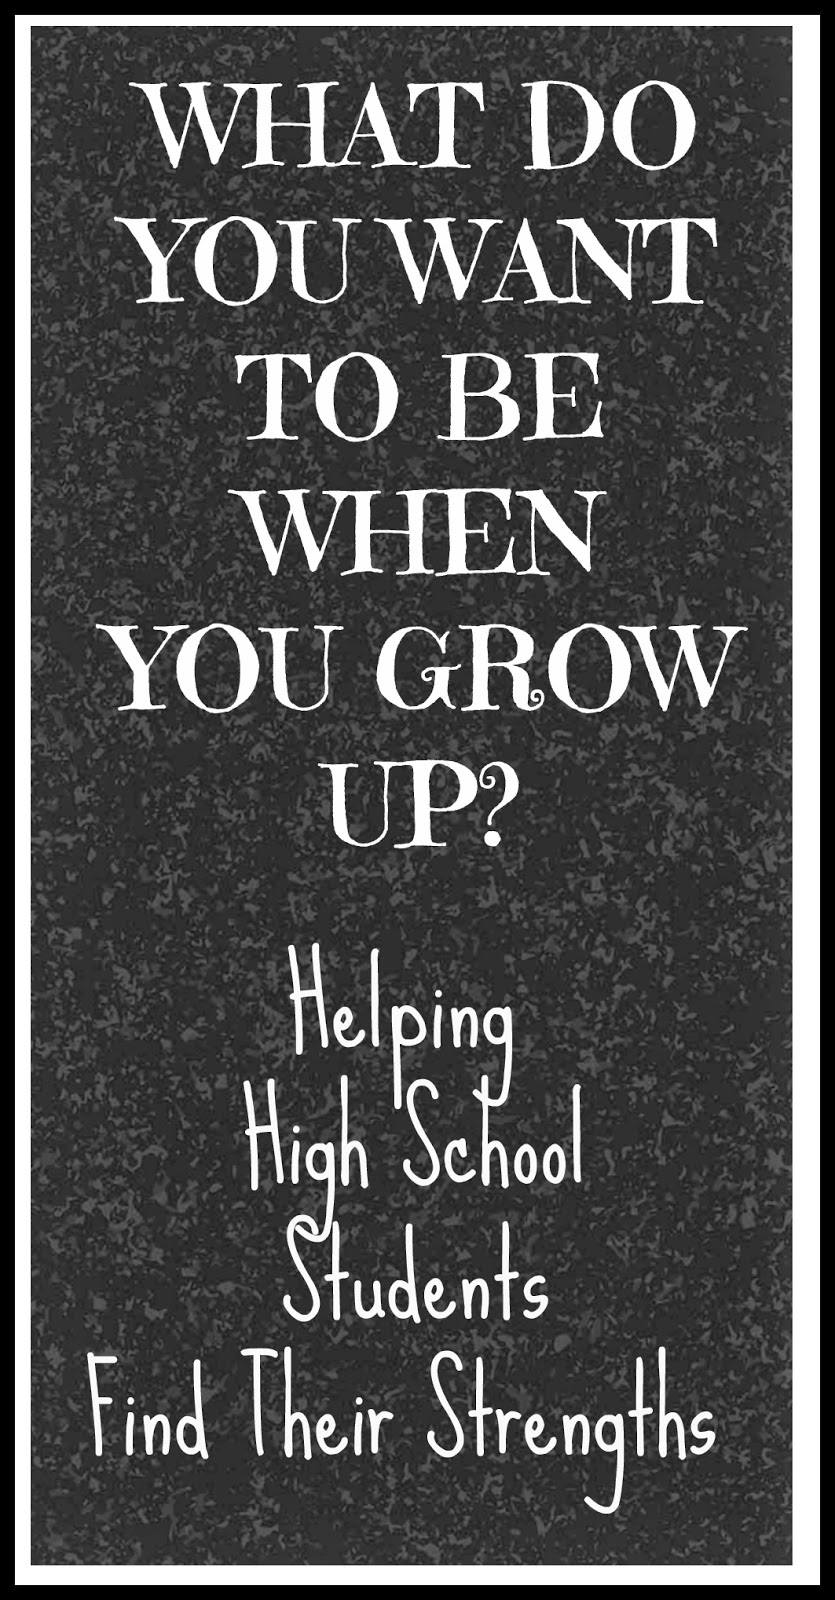 KarenTrina Childress : WHAT DO YOU WANT TO BE WHEN YOU GROW